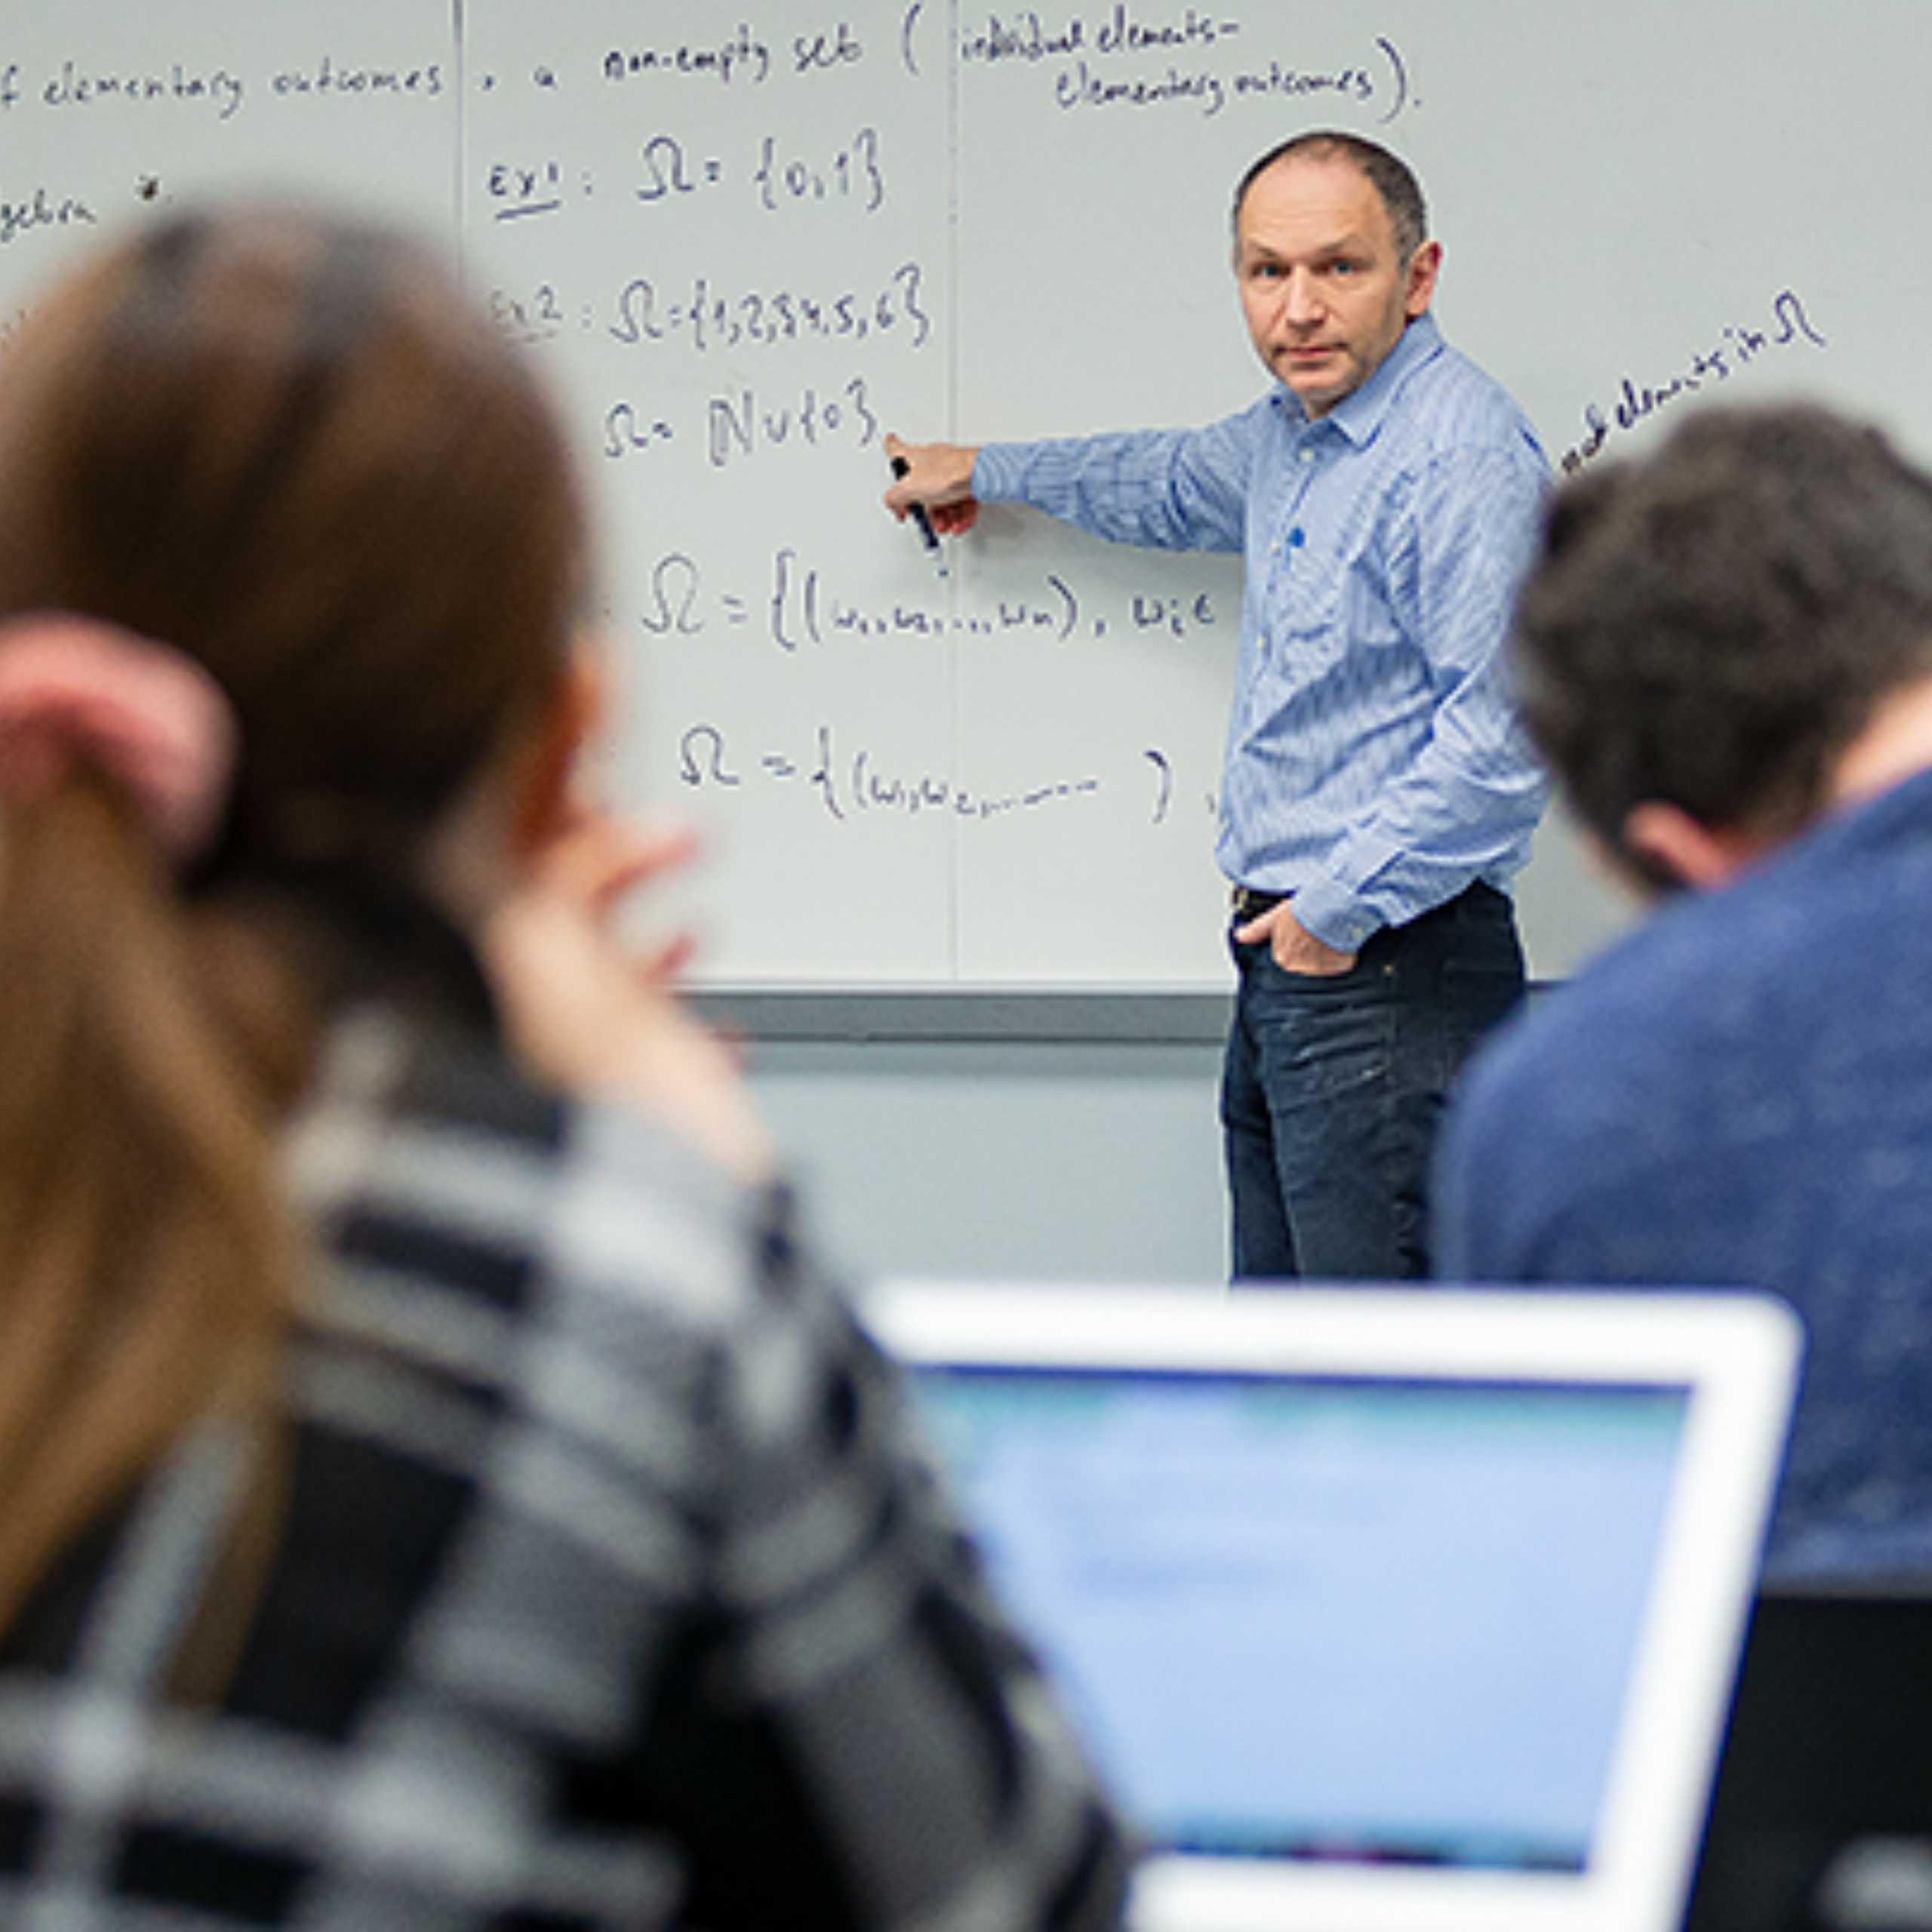 Professor Koralov teaching a class